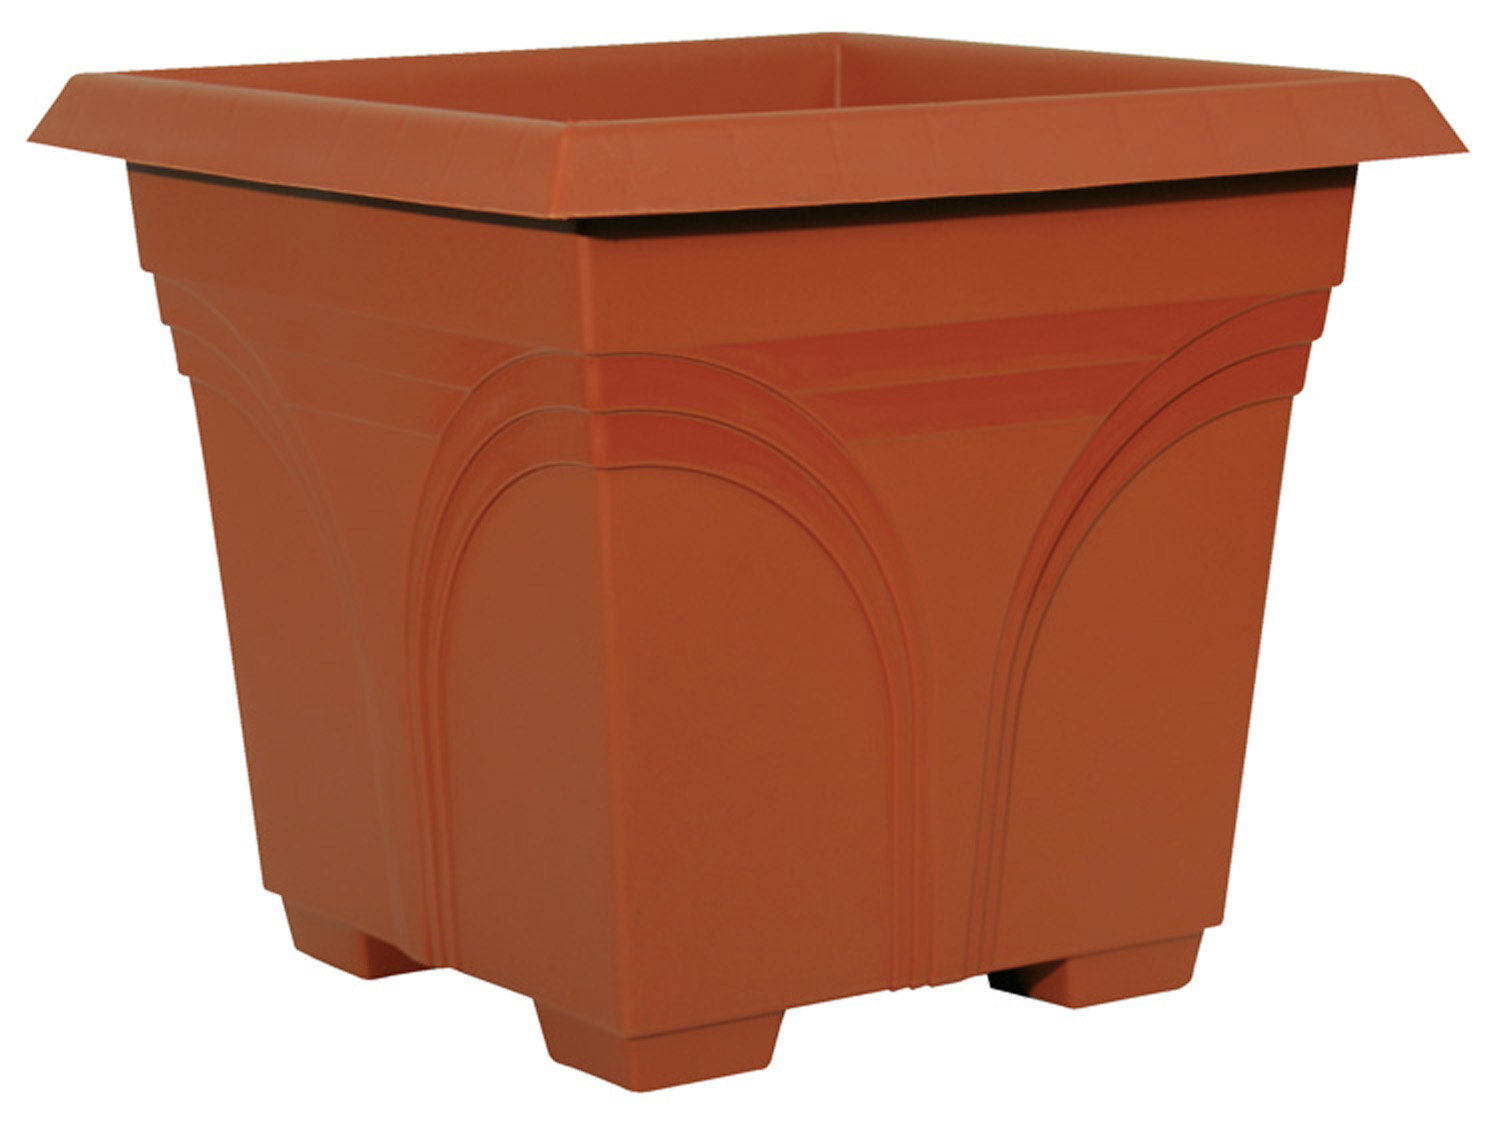 ATT SOUTHERN PATIO Ames 15in. Terra Cotta Medallion Deck Planter DP1510TC - Pack of 10